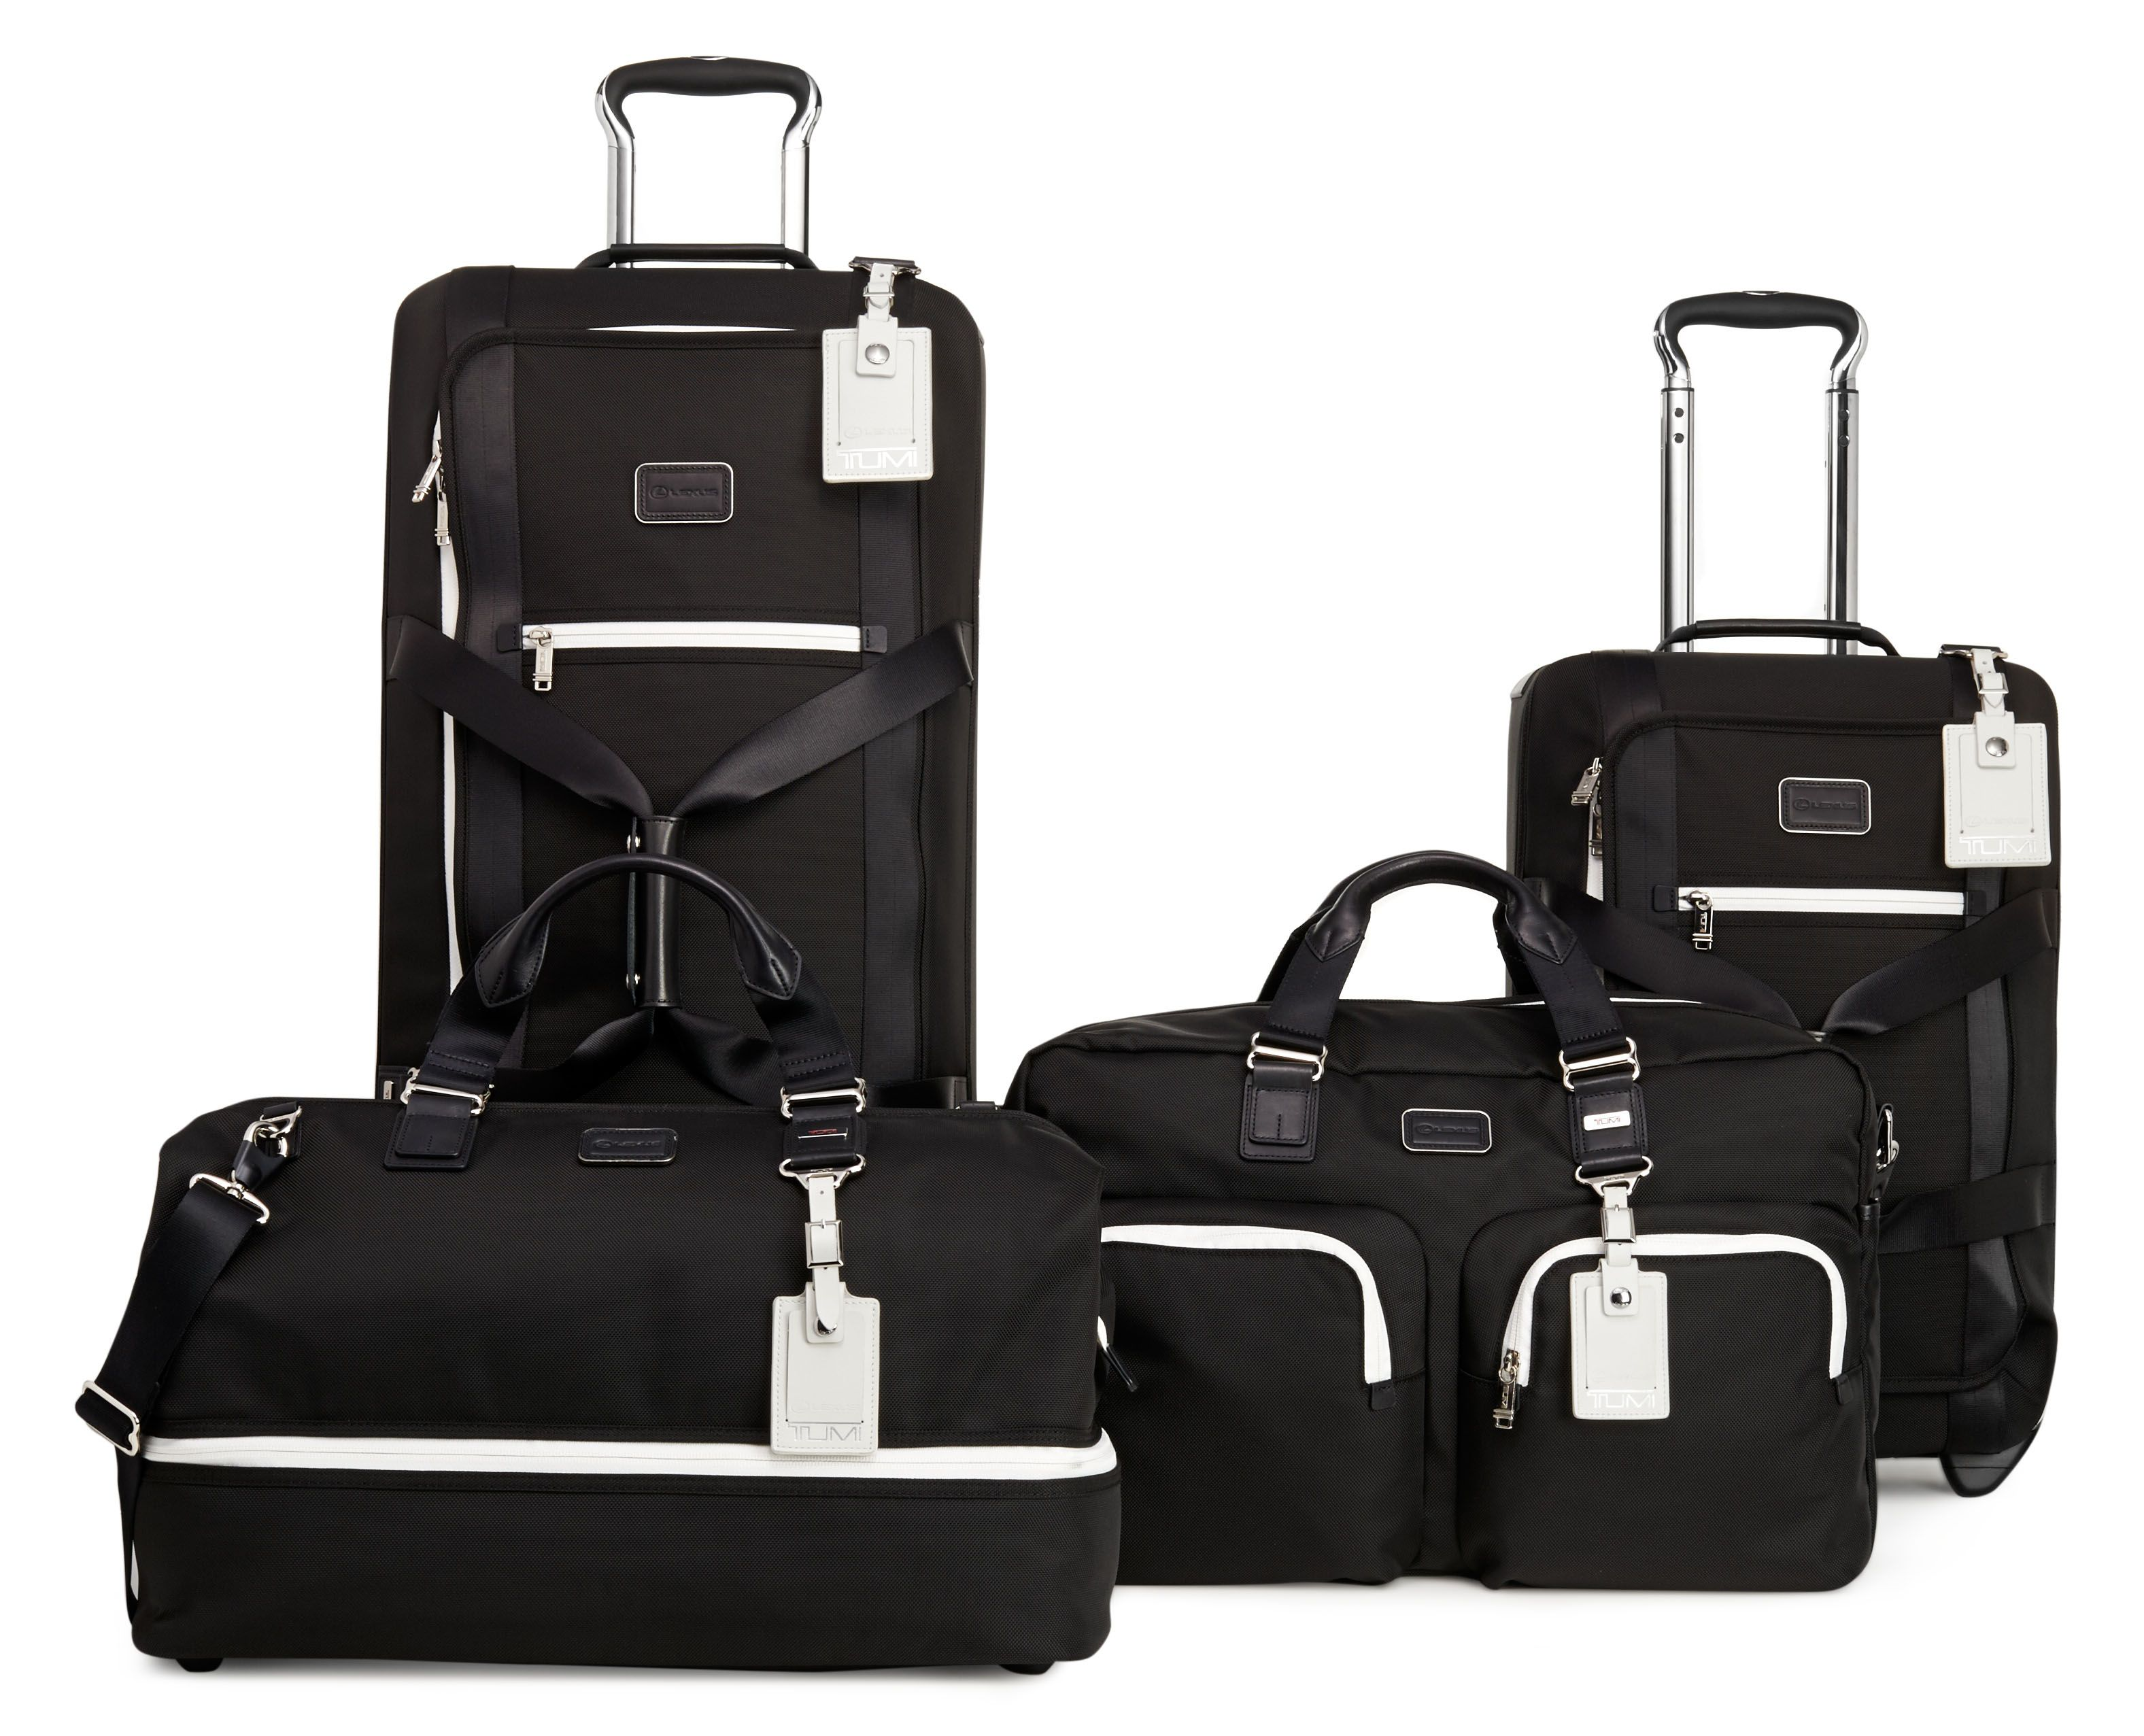 lexus the crafted line tumi luggage